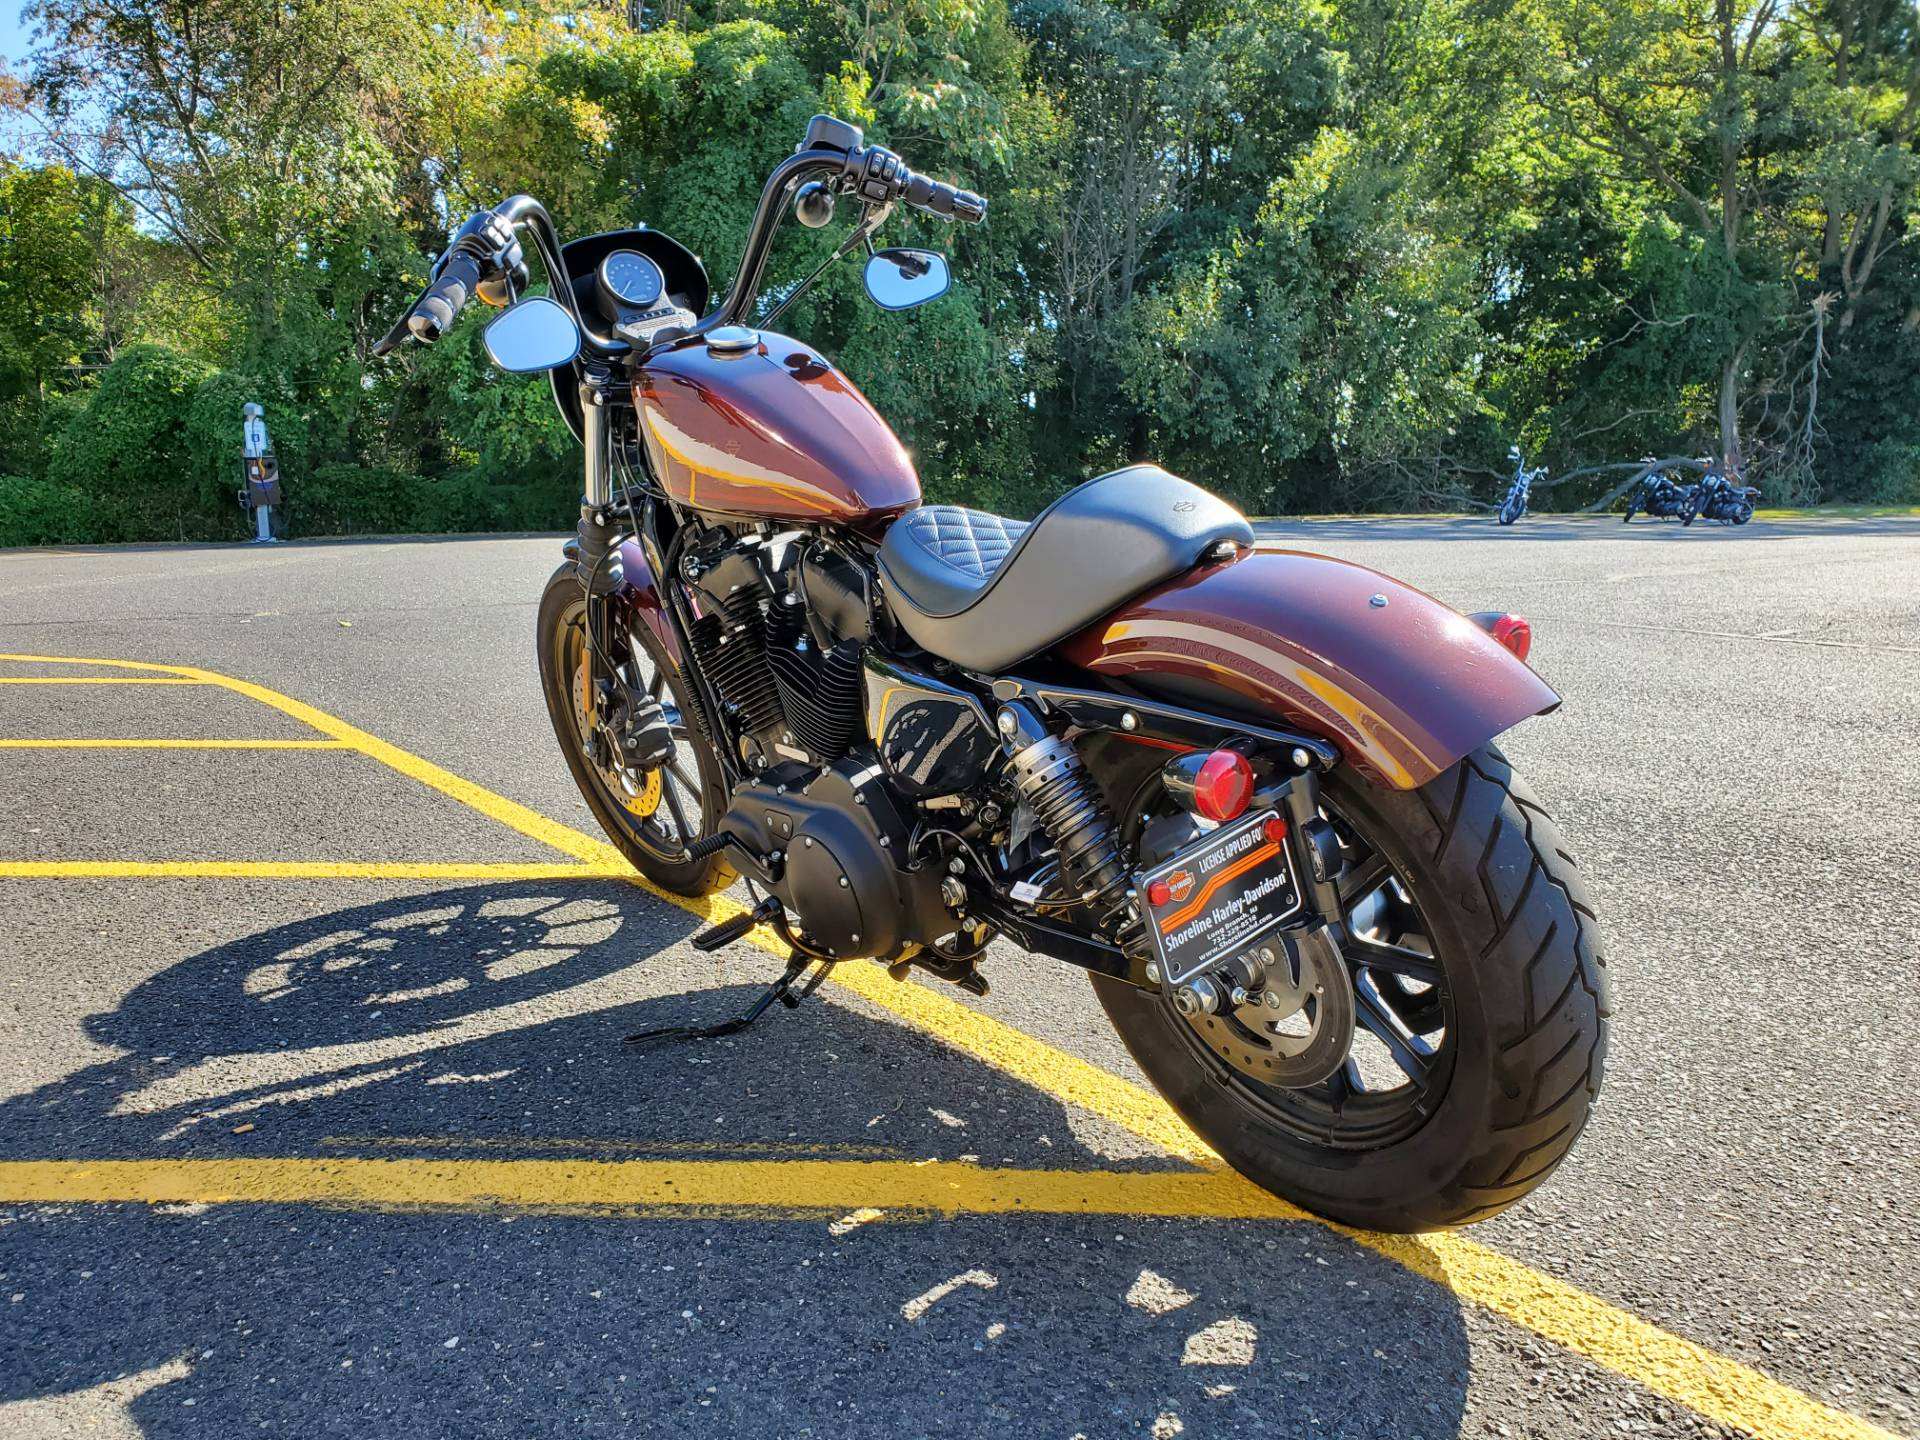 2019 Harley-Davidson Iron 1200 in West Long Branch, New Jersey - Photo 5